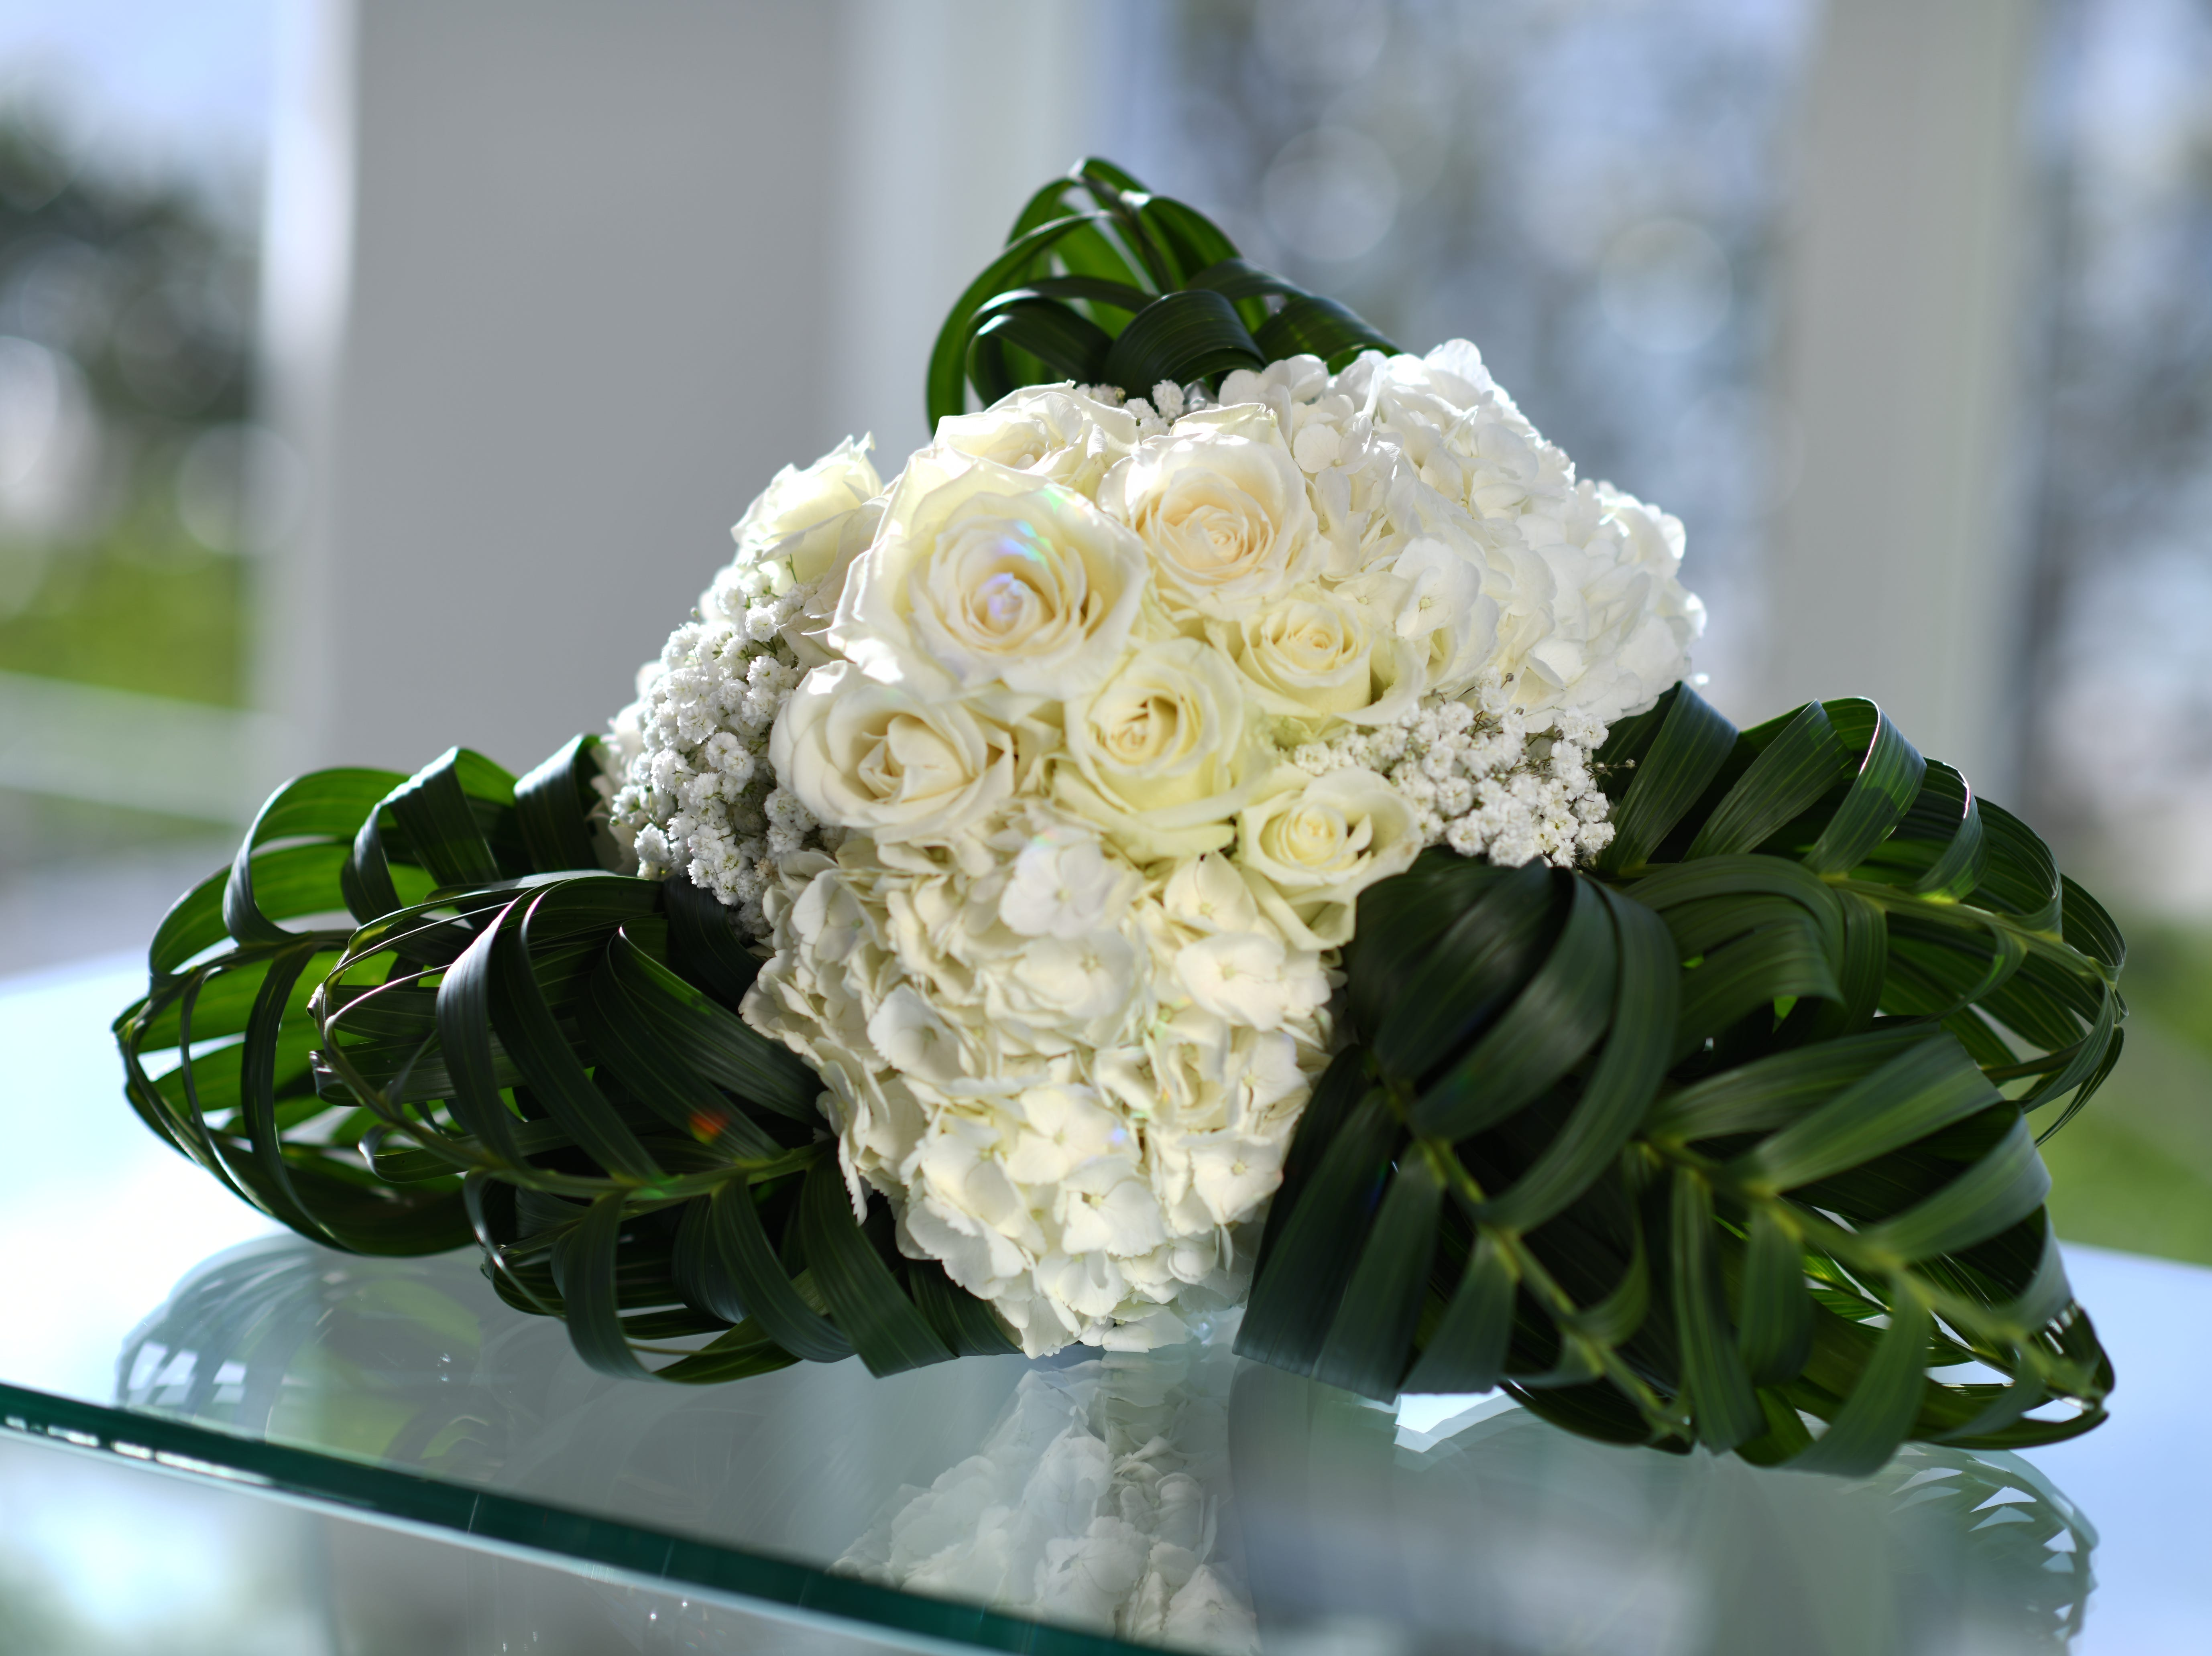 Wedding bouquets provided by Arluis Weddings.